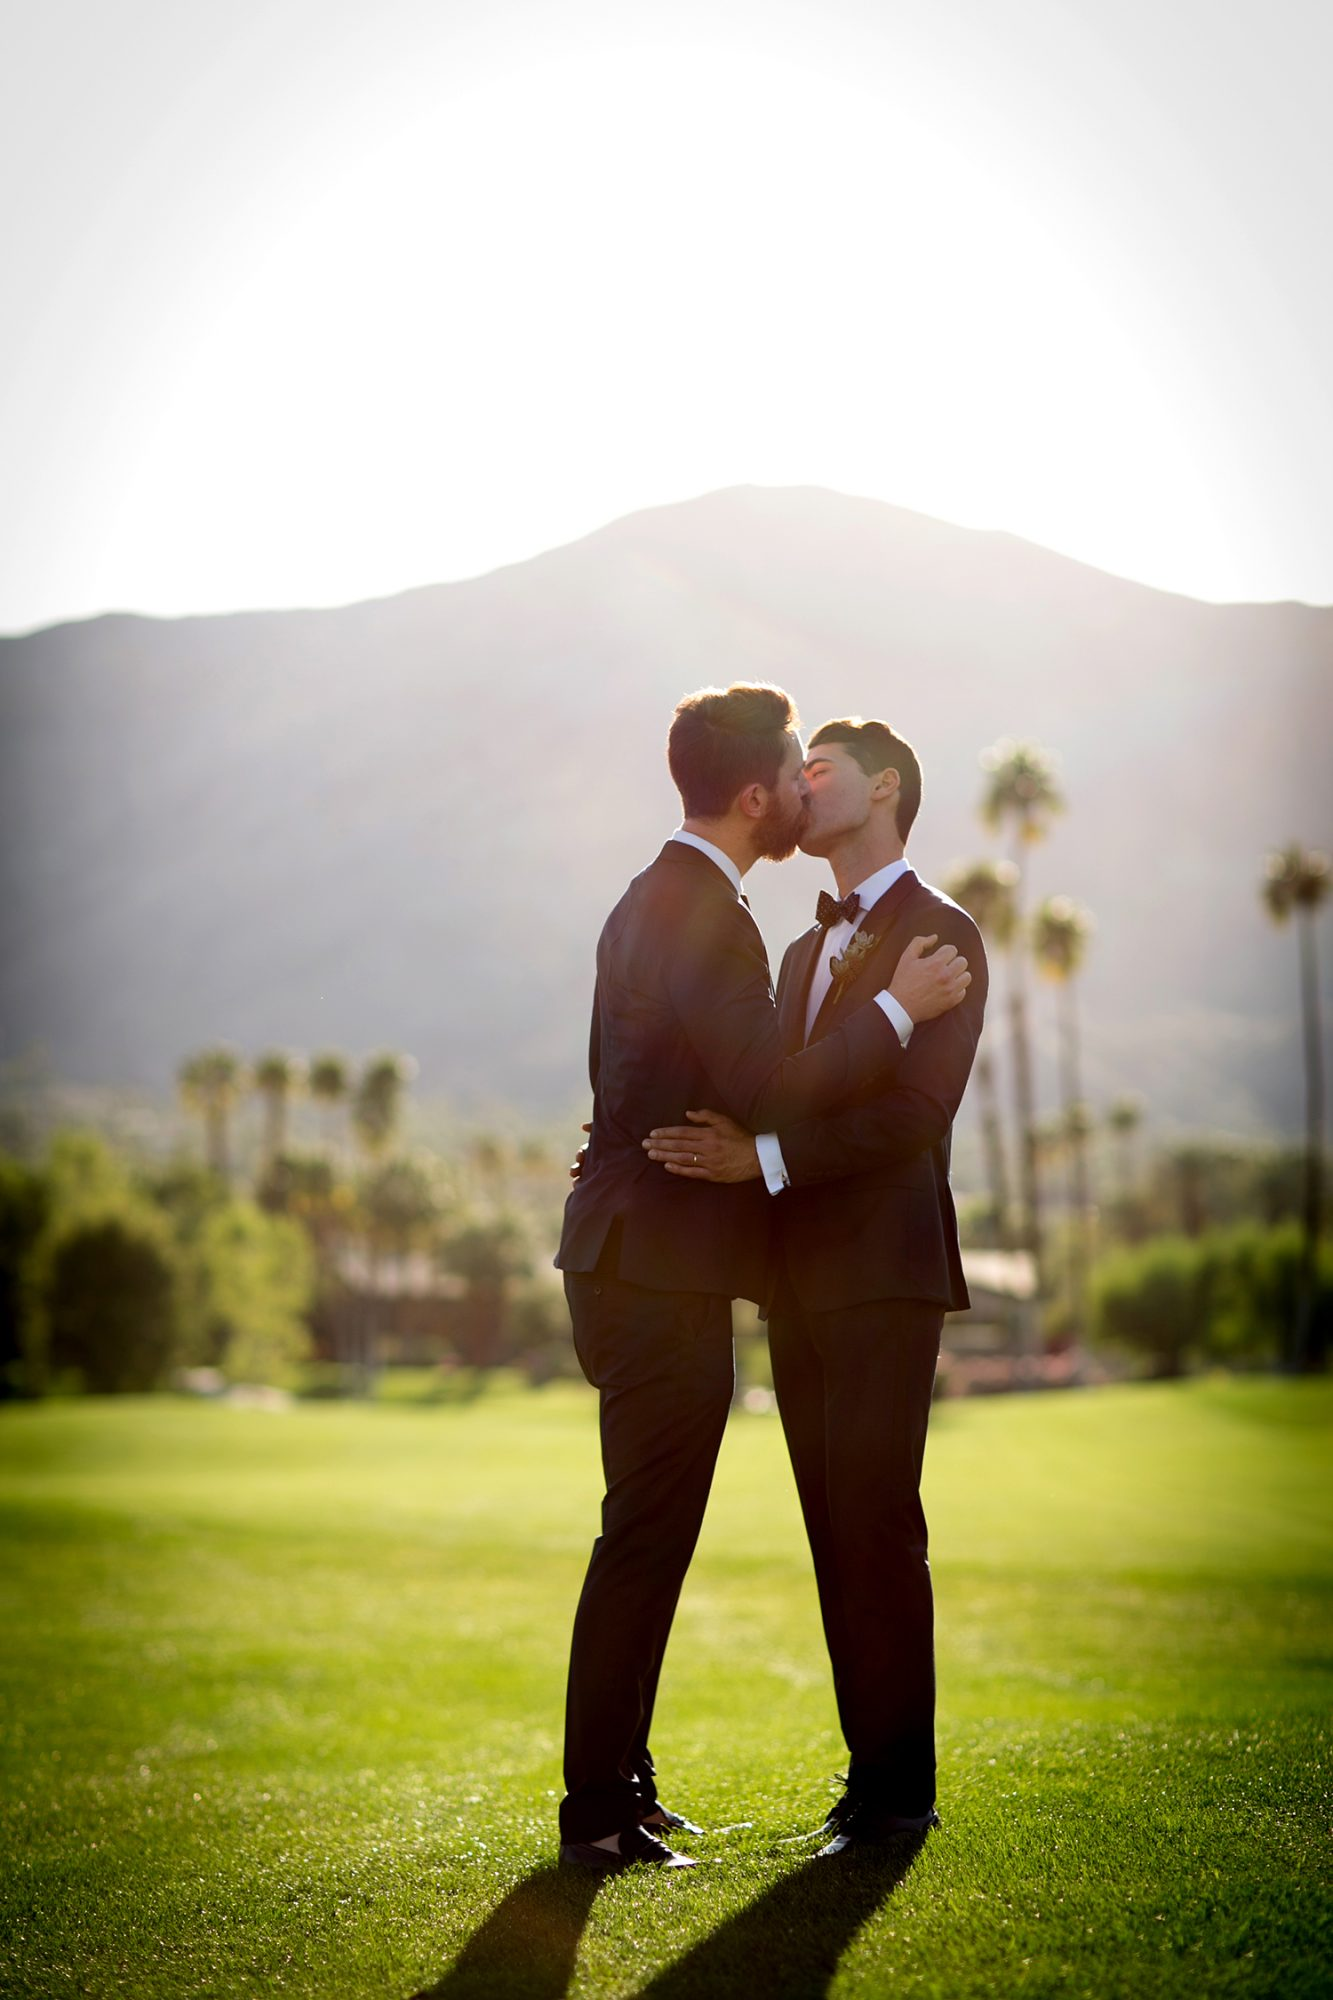 Gorgeous lighting was the cherry on top of this romantic portrait.